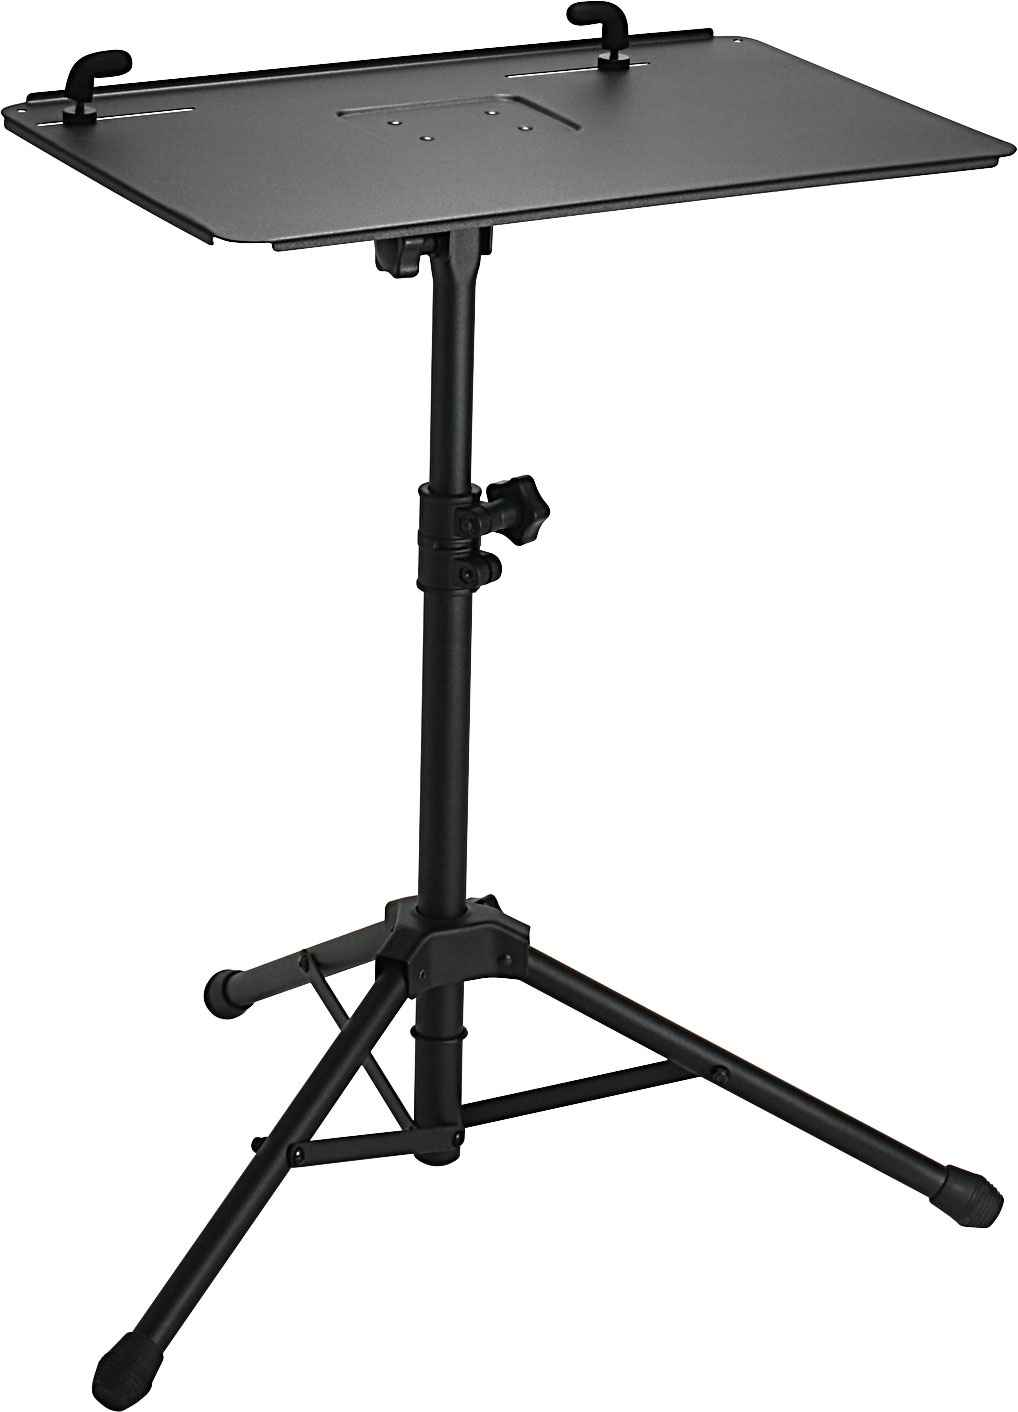 Roland black laptop stand with adjustable height